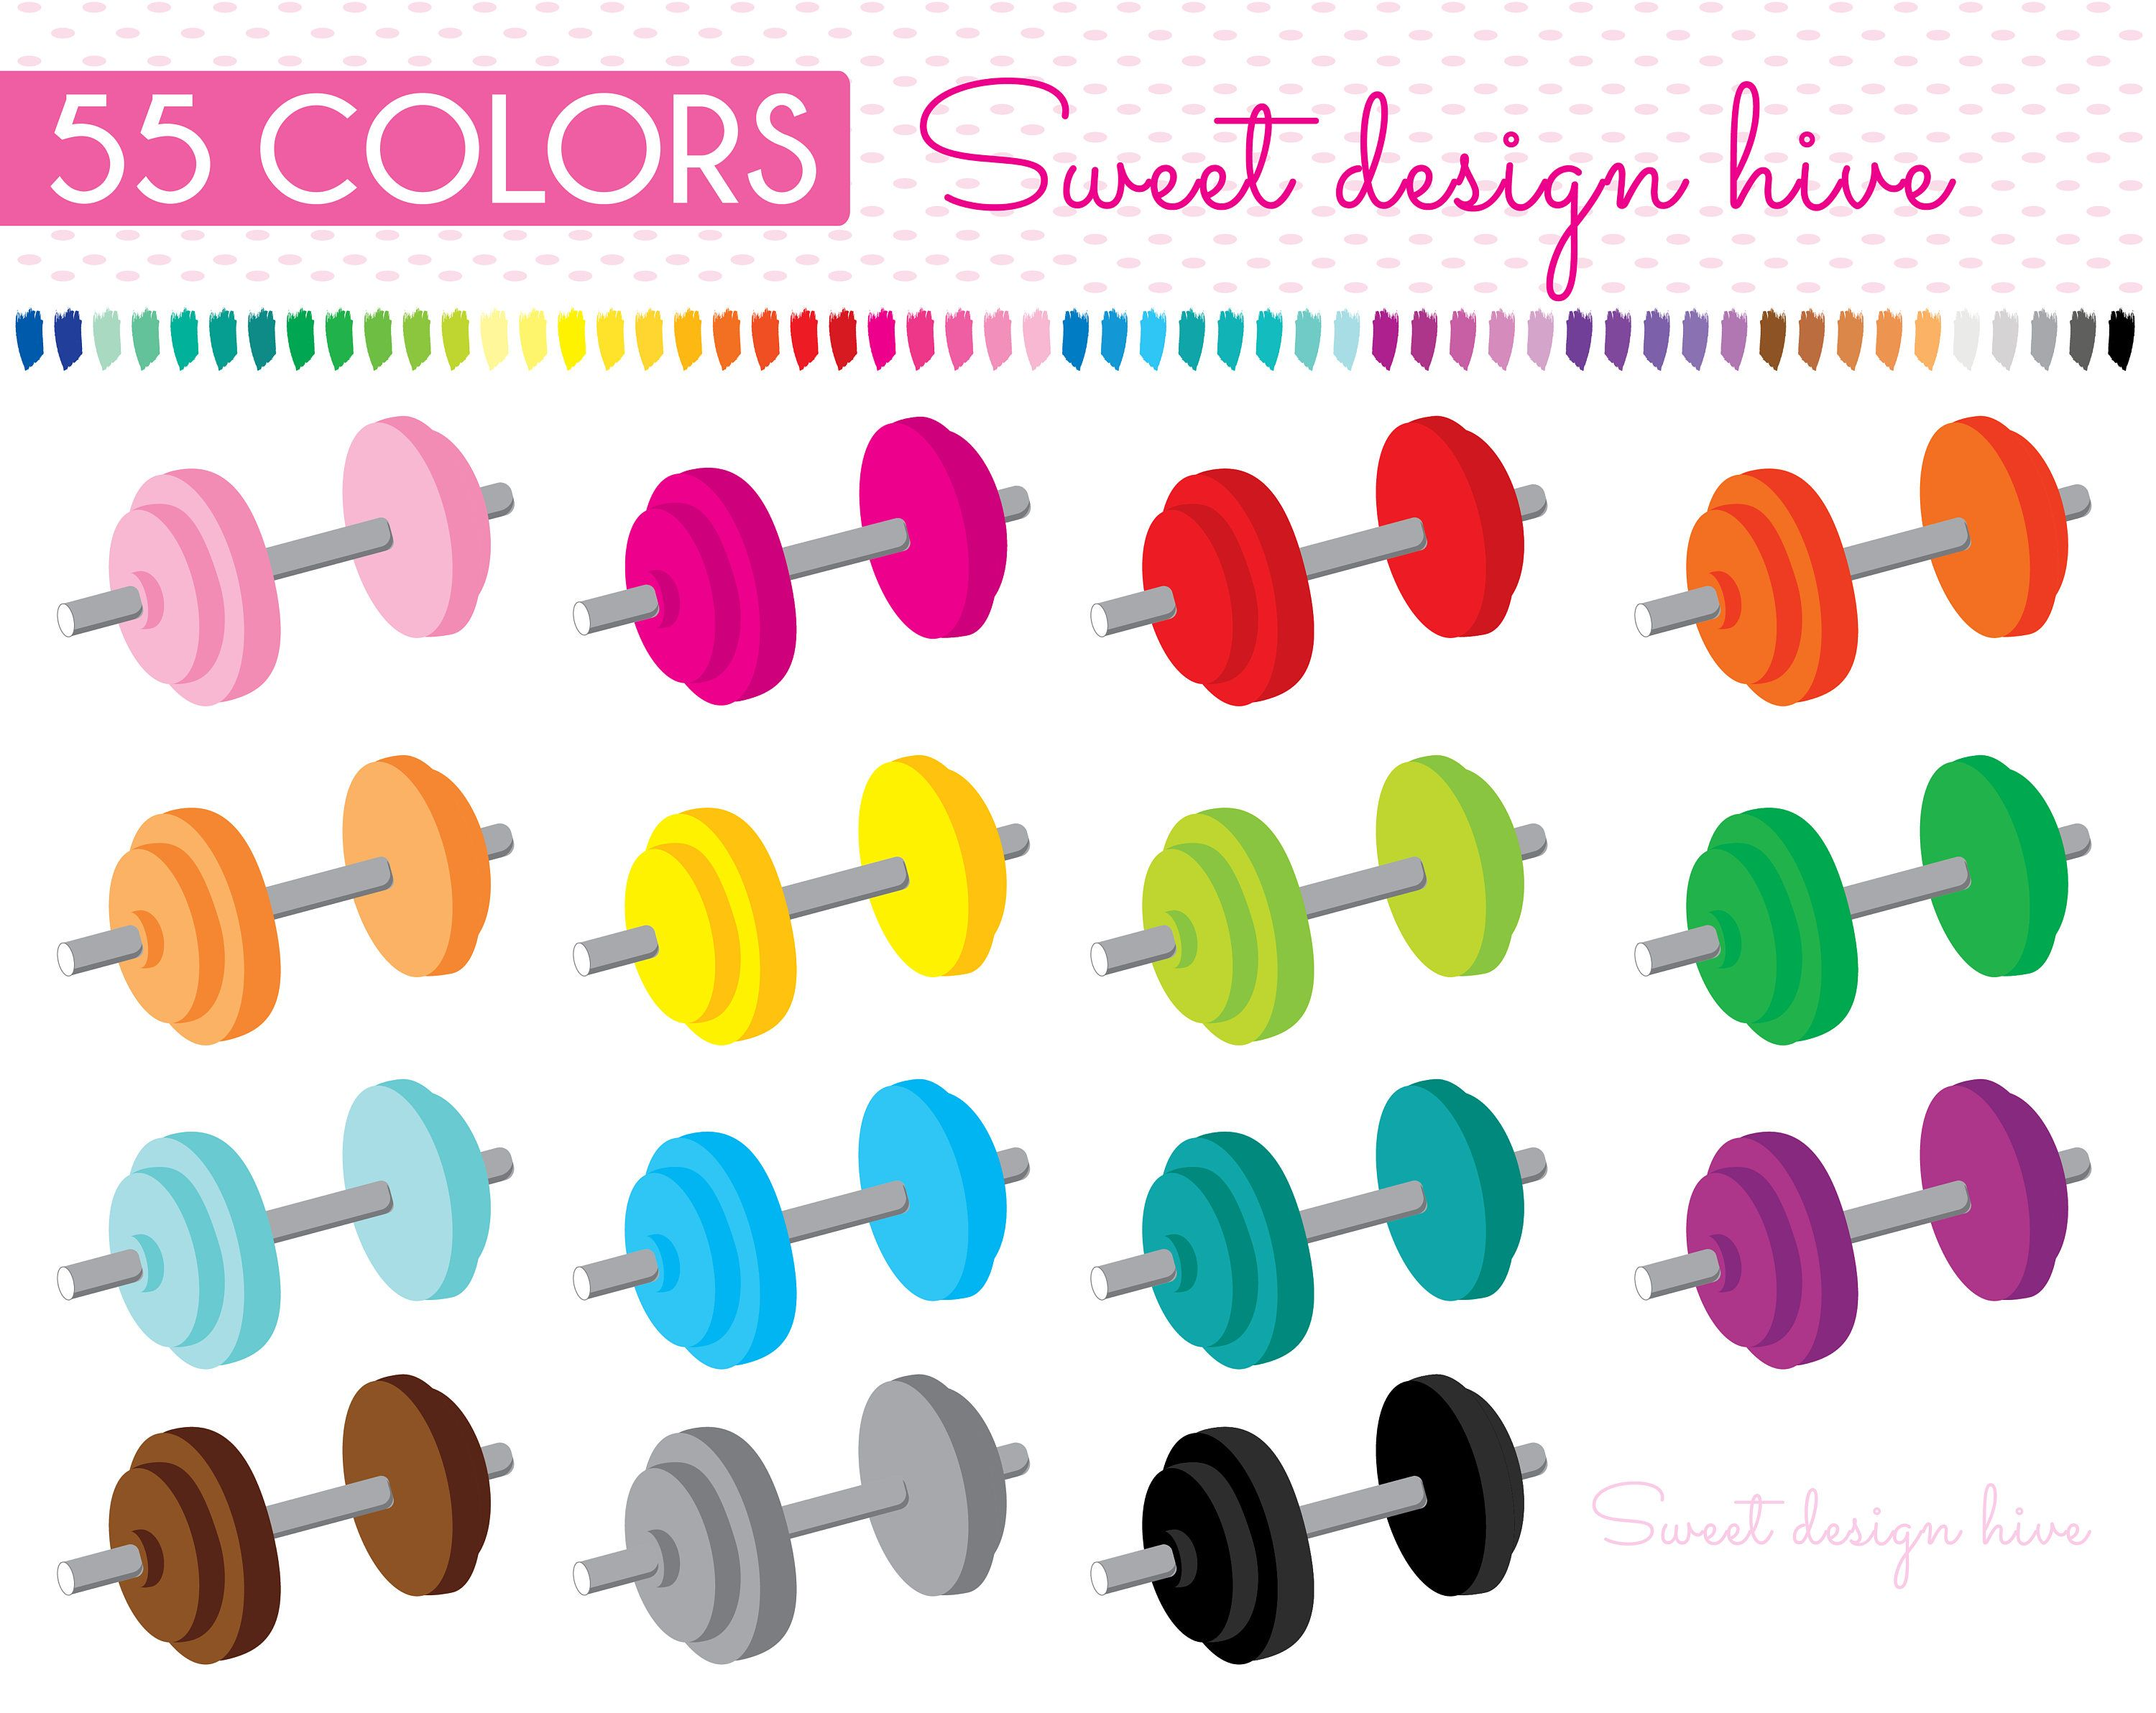 small resolution of dumbbell clipart weights fitness clipart gym clipart sports clipart workout clipart gym equipment fitness planner stickers pl0088 by sweetdesignhive